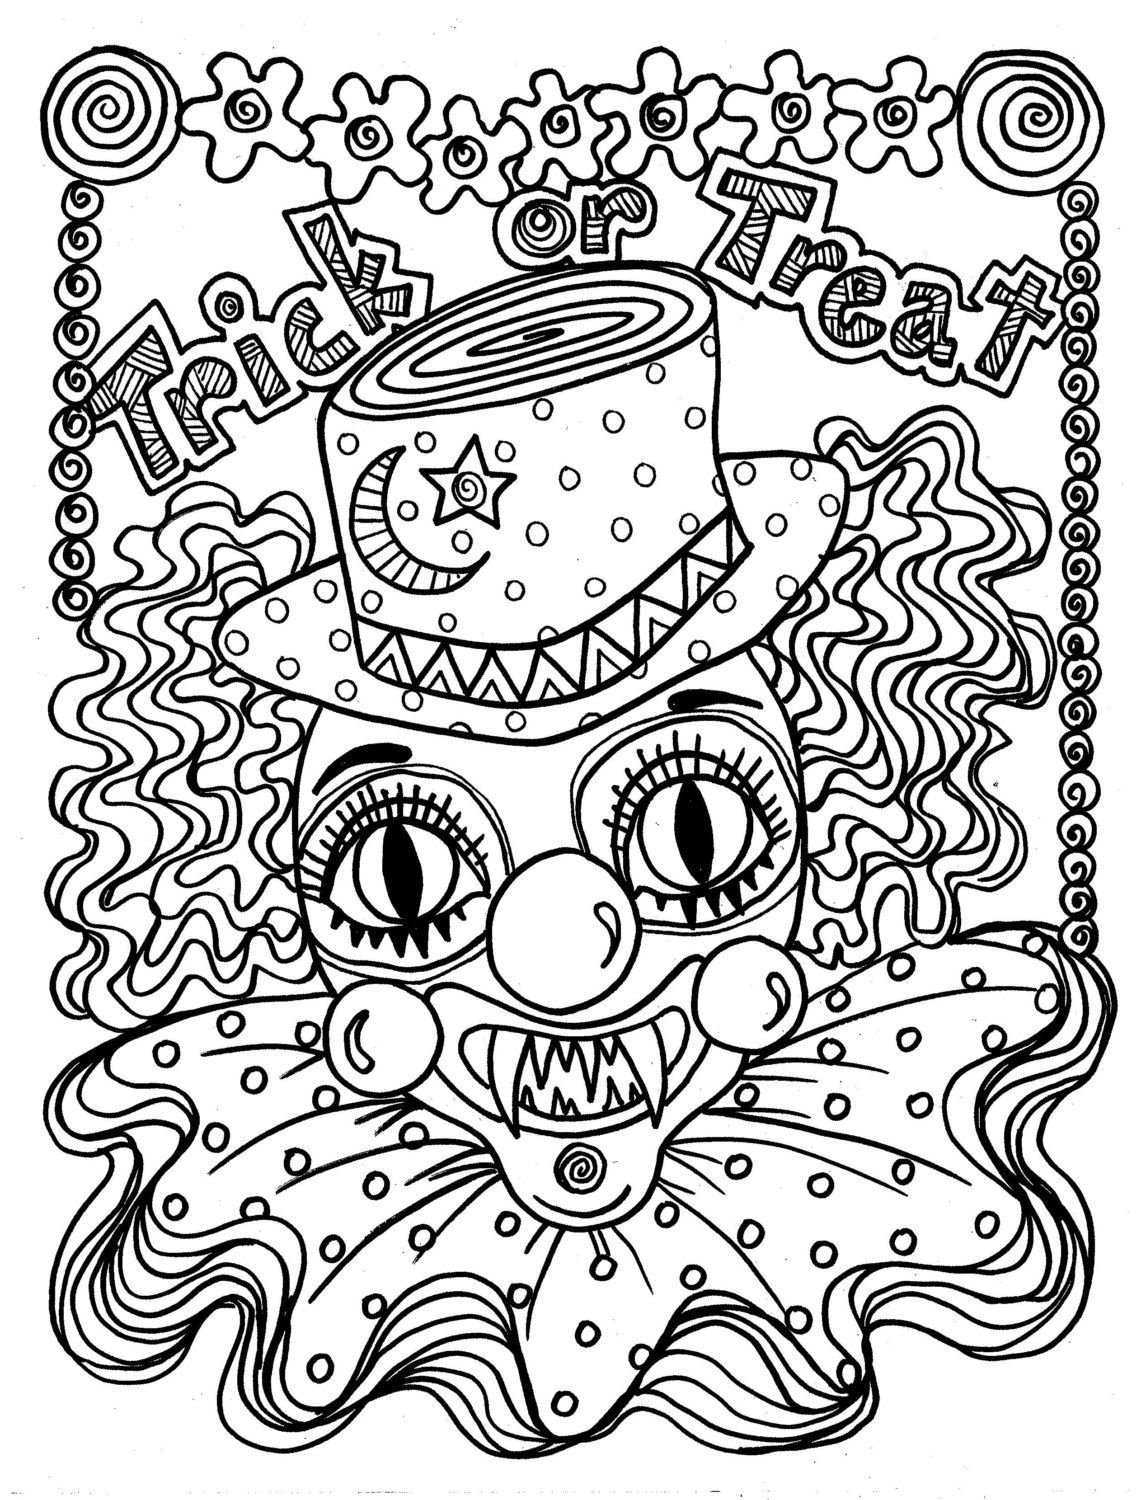 Scary dinosaur coloring pages - Instant Download Scary Clown Halloween Spooky Coloring Page For All Ages Trick Or Treat